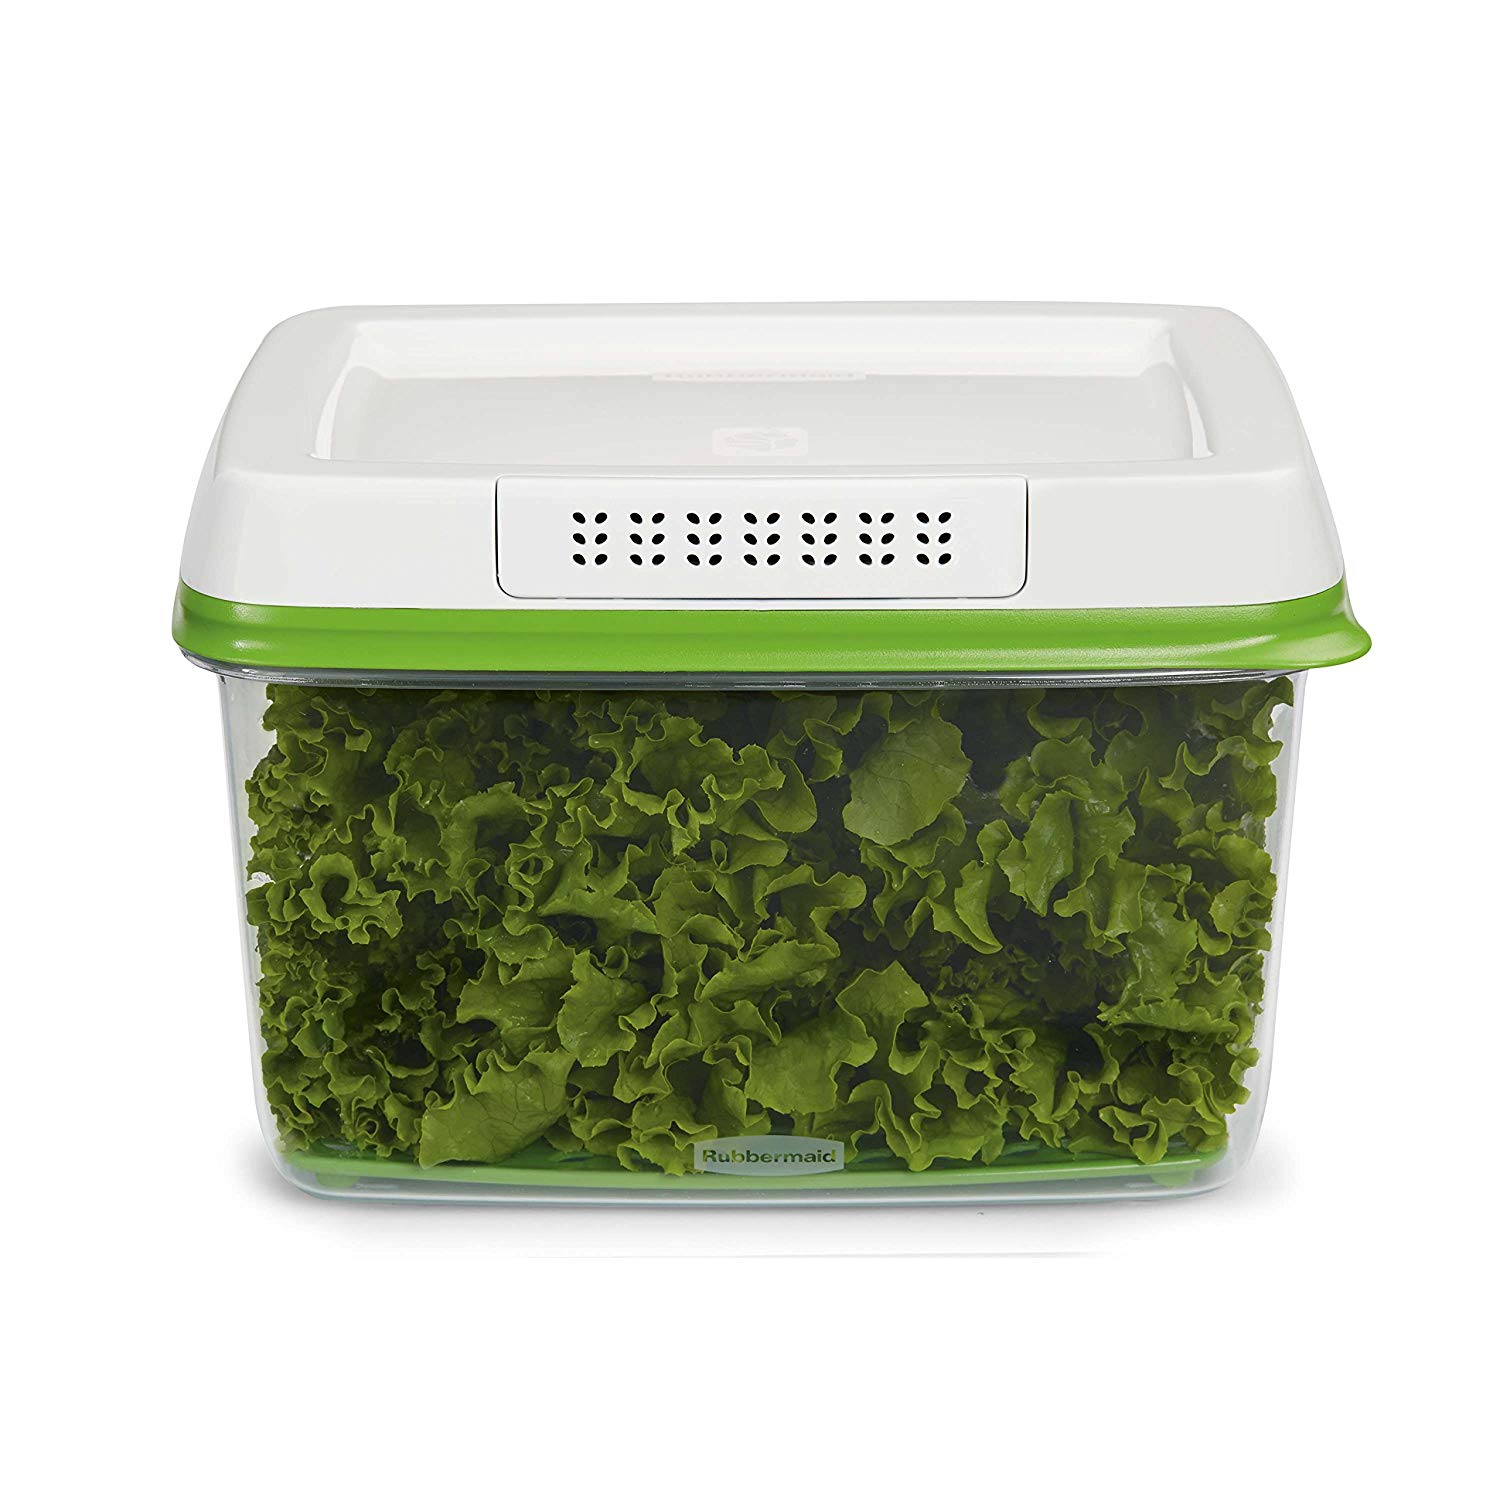 Rubbermaid FreshWorks Produce Saver Large, 17.3-Cup Container